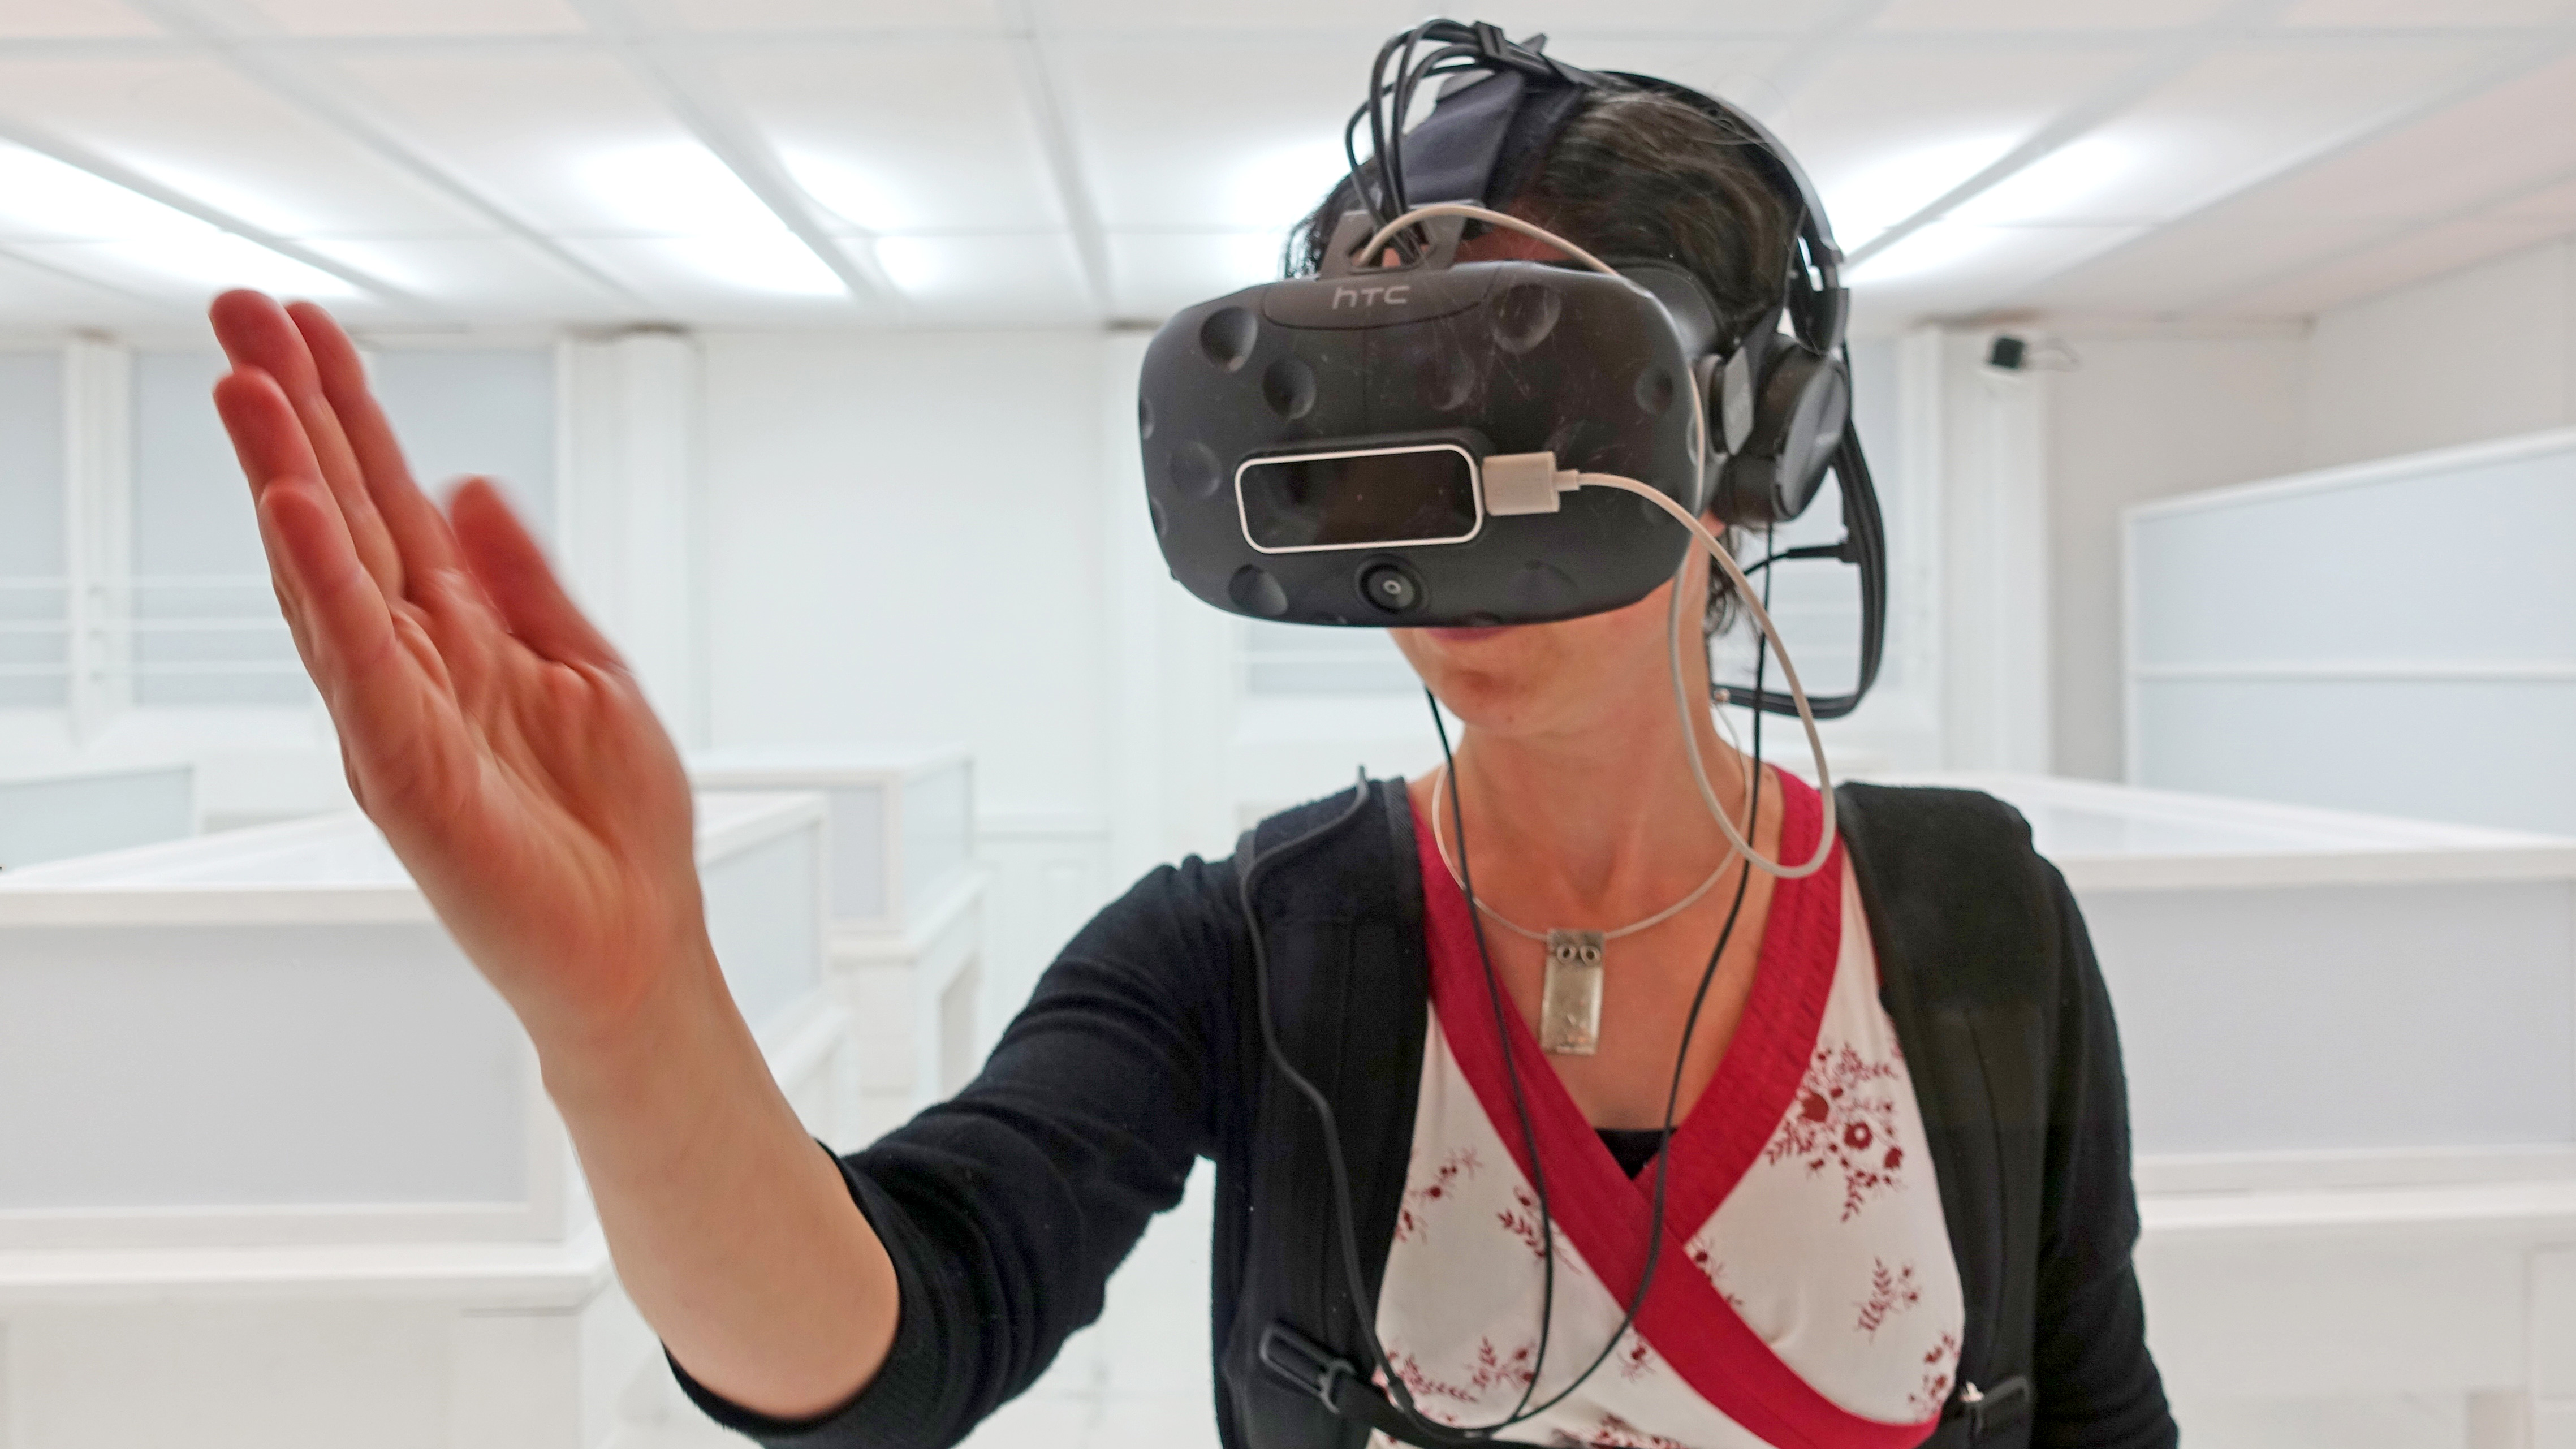 Woman trying a VR experience, wearing a VR headset